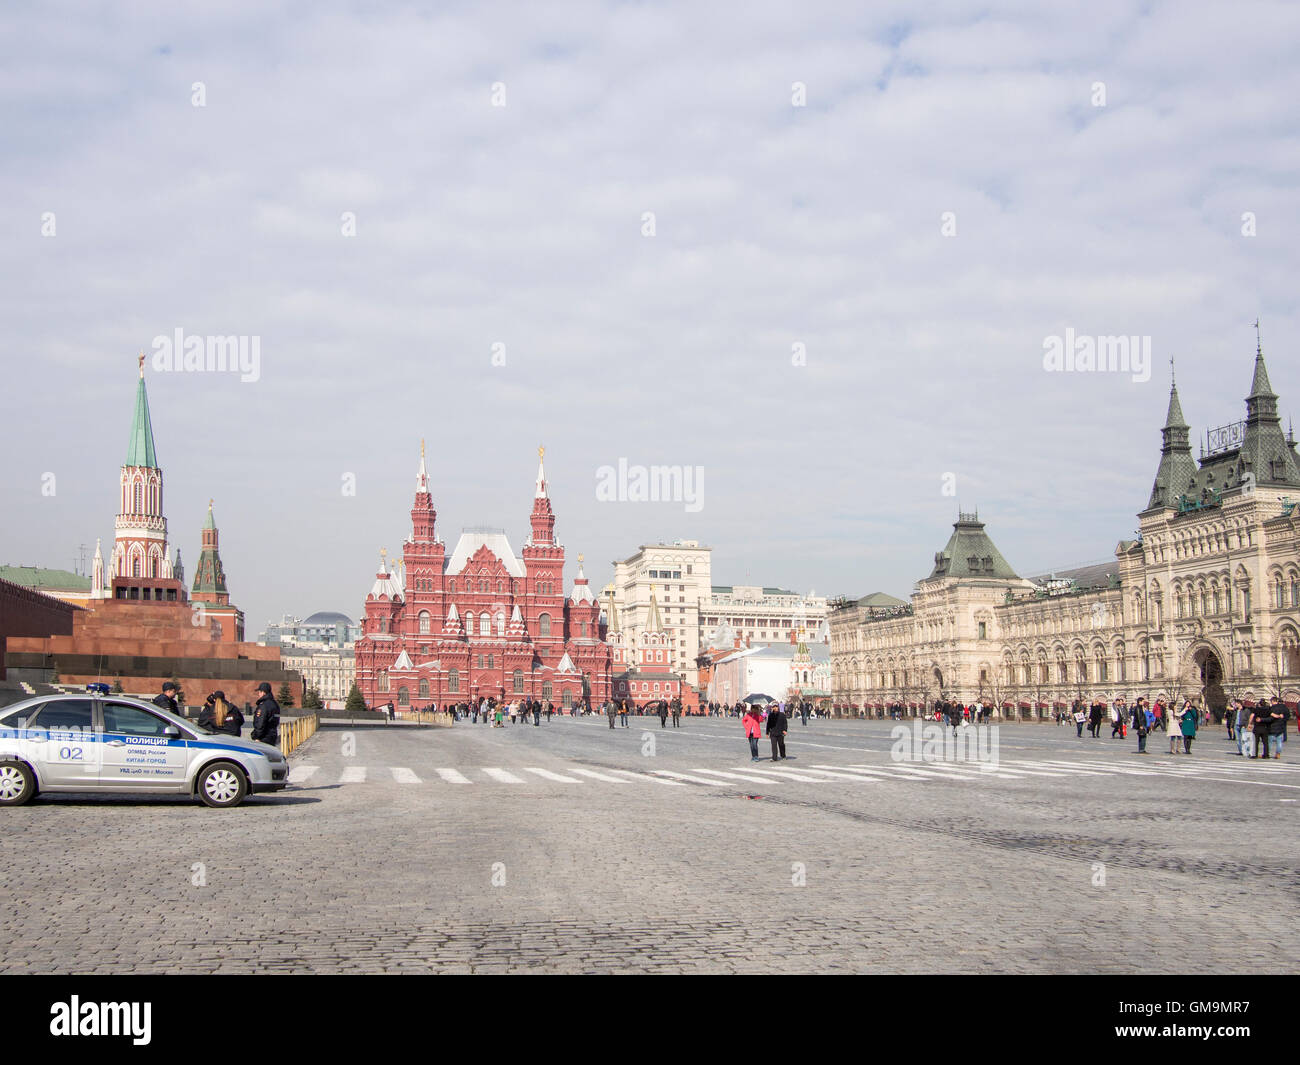 Red Square in Moscow, separates the Kremlin, the former royal citadel and the residence of the President of Russia. - Stock Image